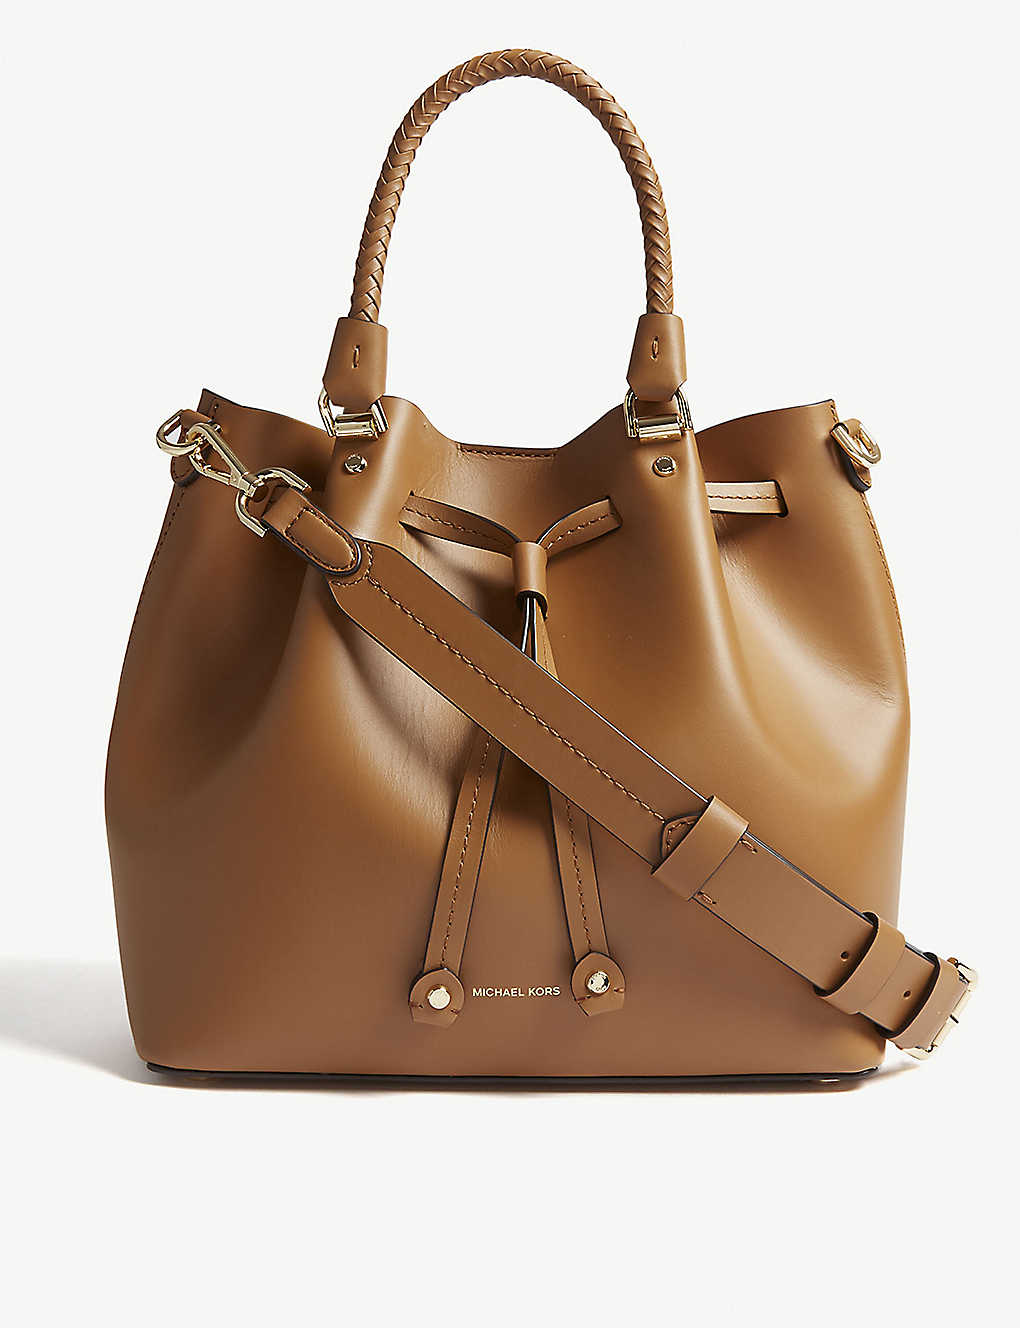 89e32ebec0f4 MICHAEL MICHAEL KORS - Blakely leather bucket bag